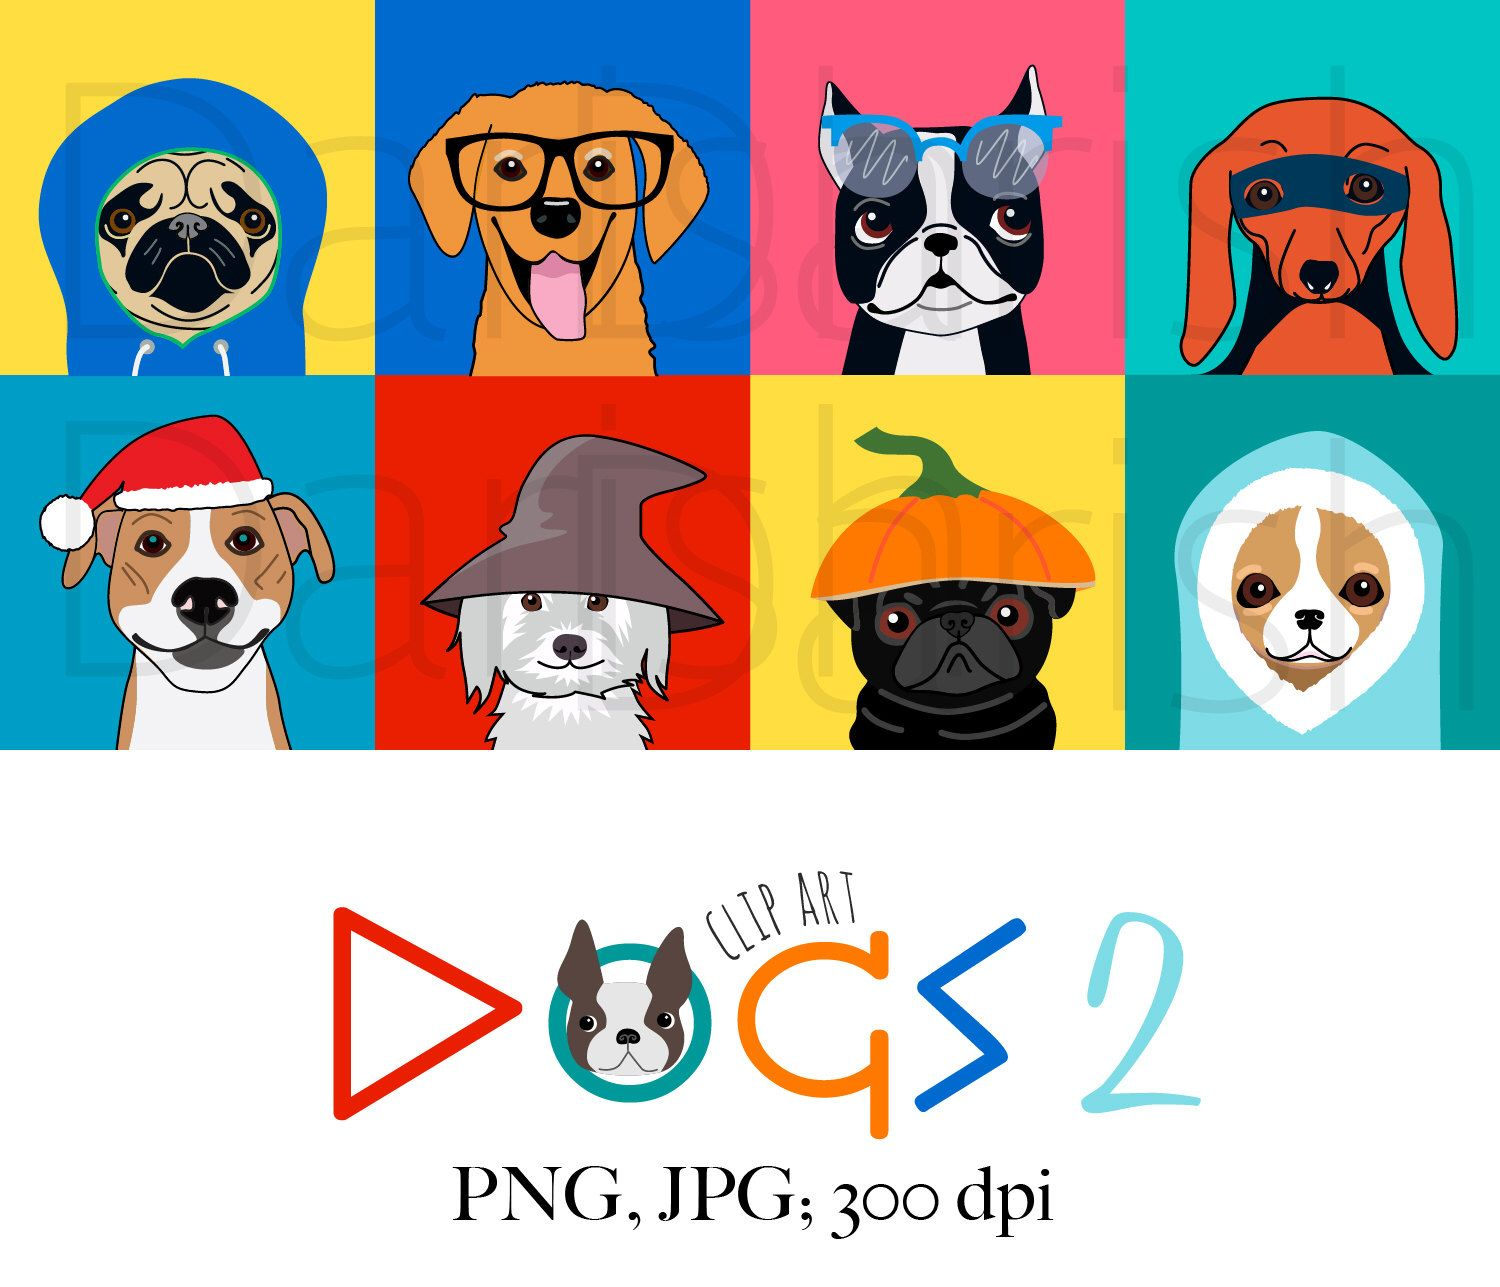 hight resolution of dog holiday clip art dog clipart dog halloween animal clipart dog characters